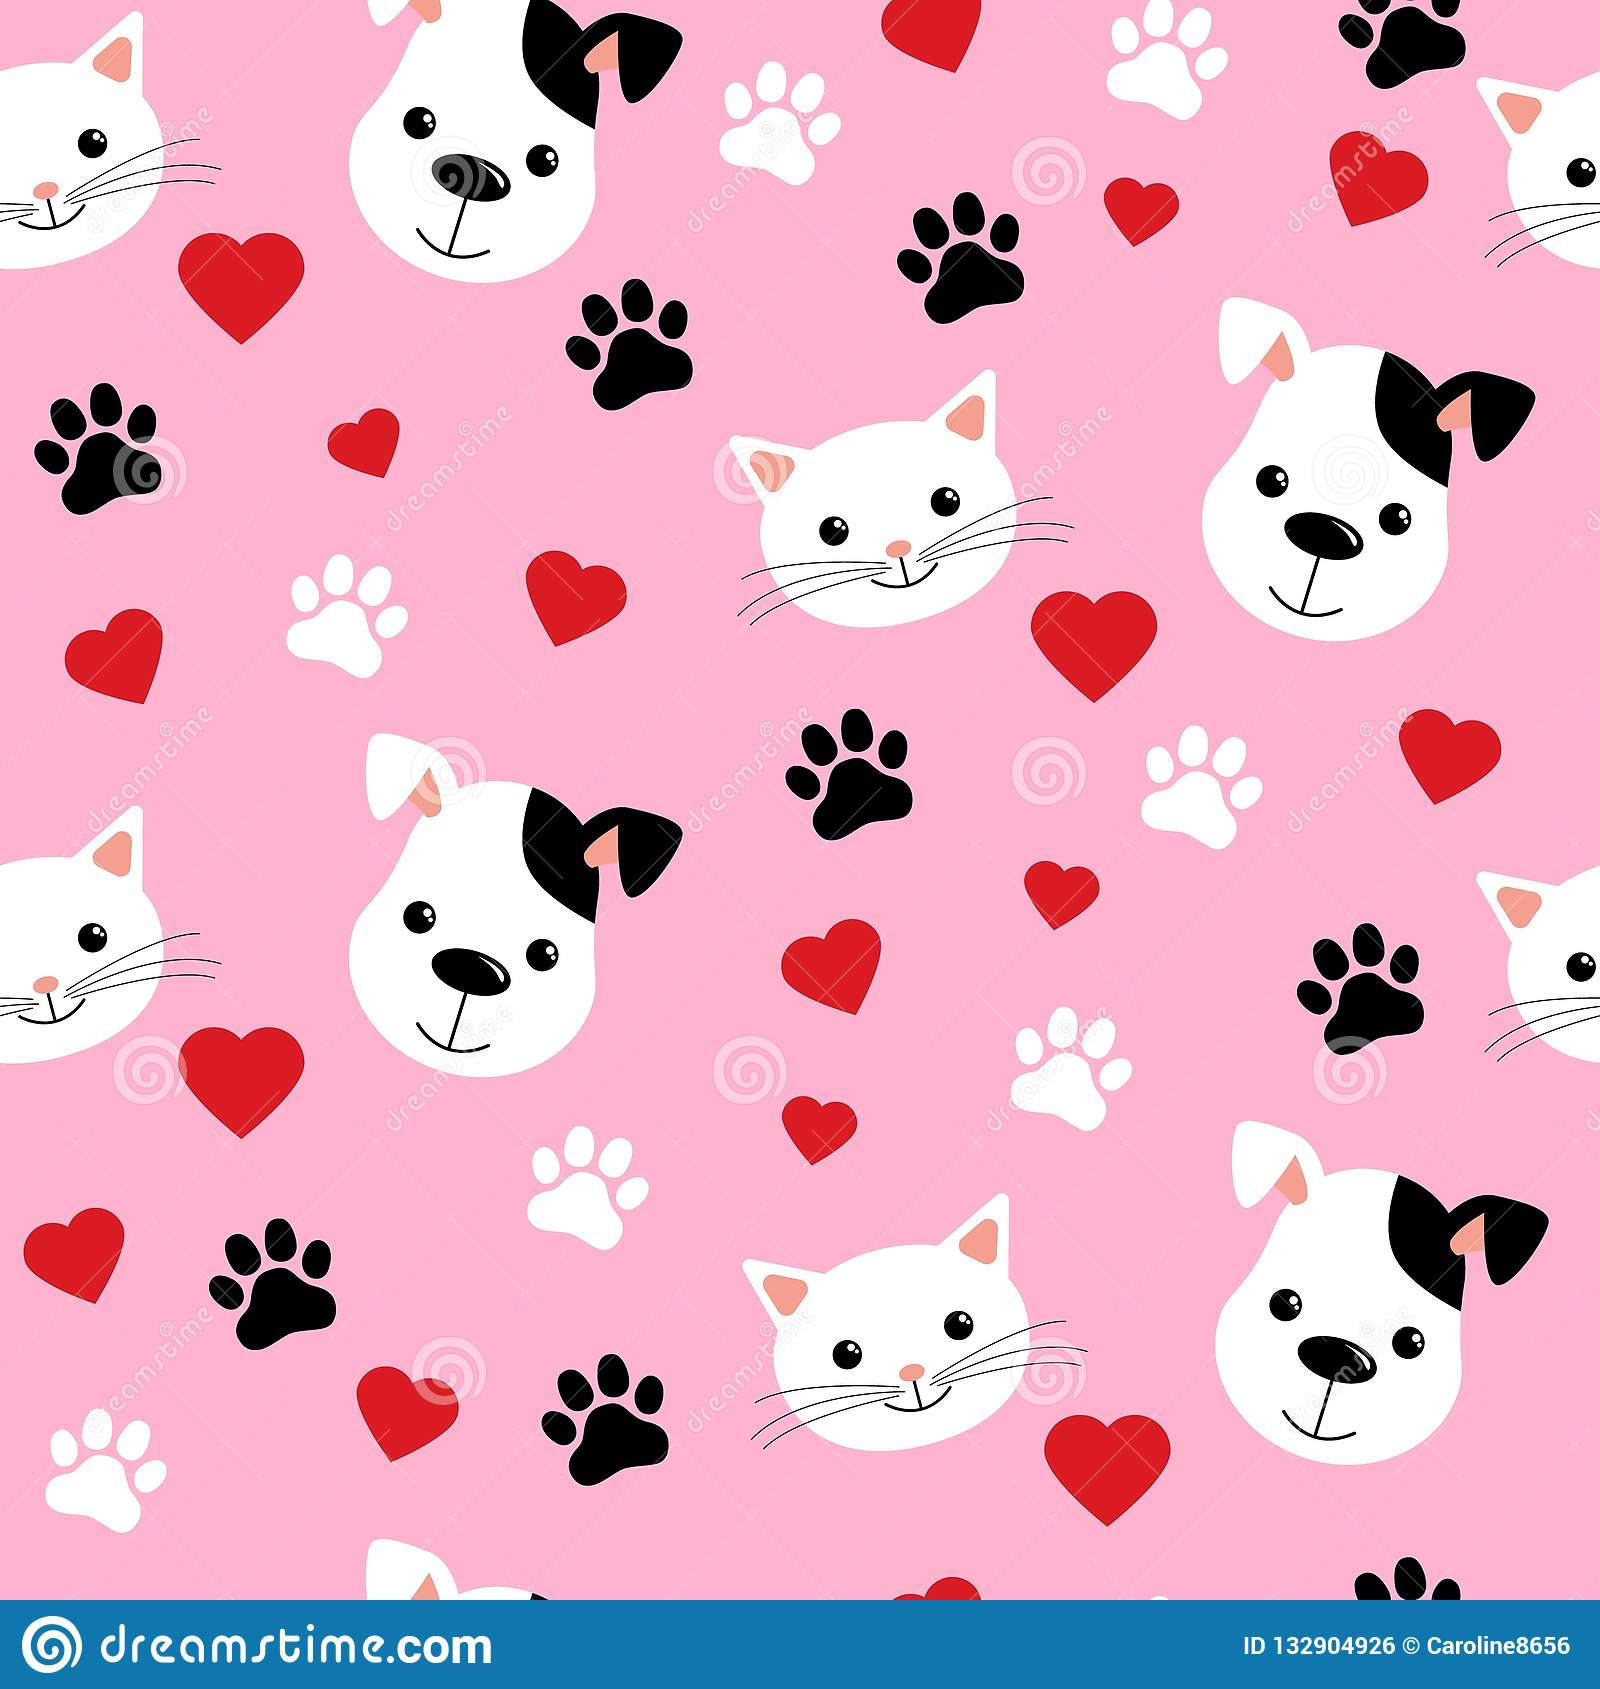 Cartoon Cats And Dogs Seamless Pattern Showing Cute Cat And Dog For Pets Friendship Or Wallpaper Design Stock Vector Illustration Of Animal Happy 132904926